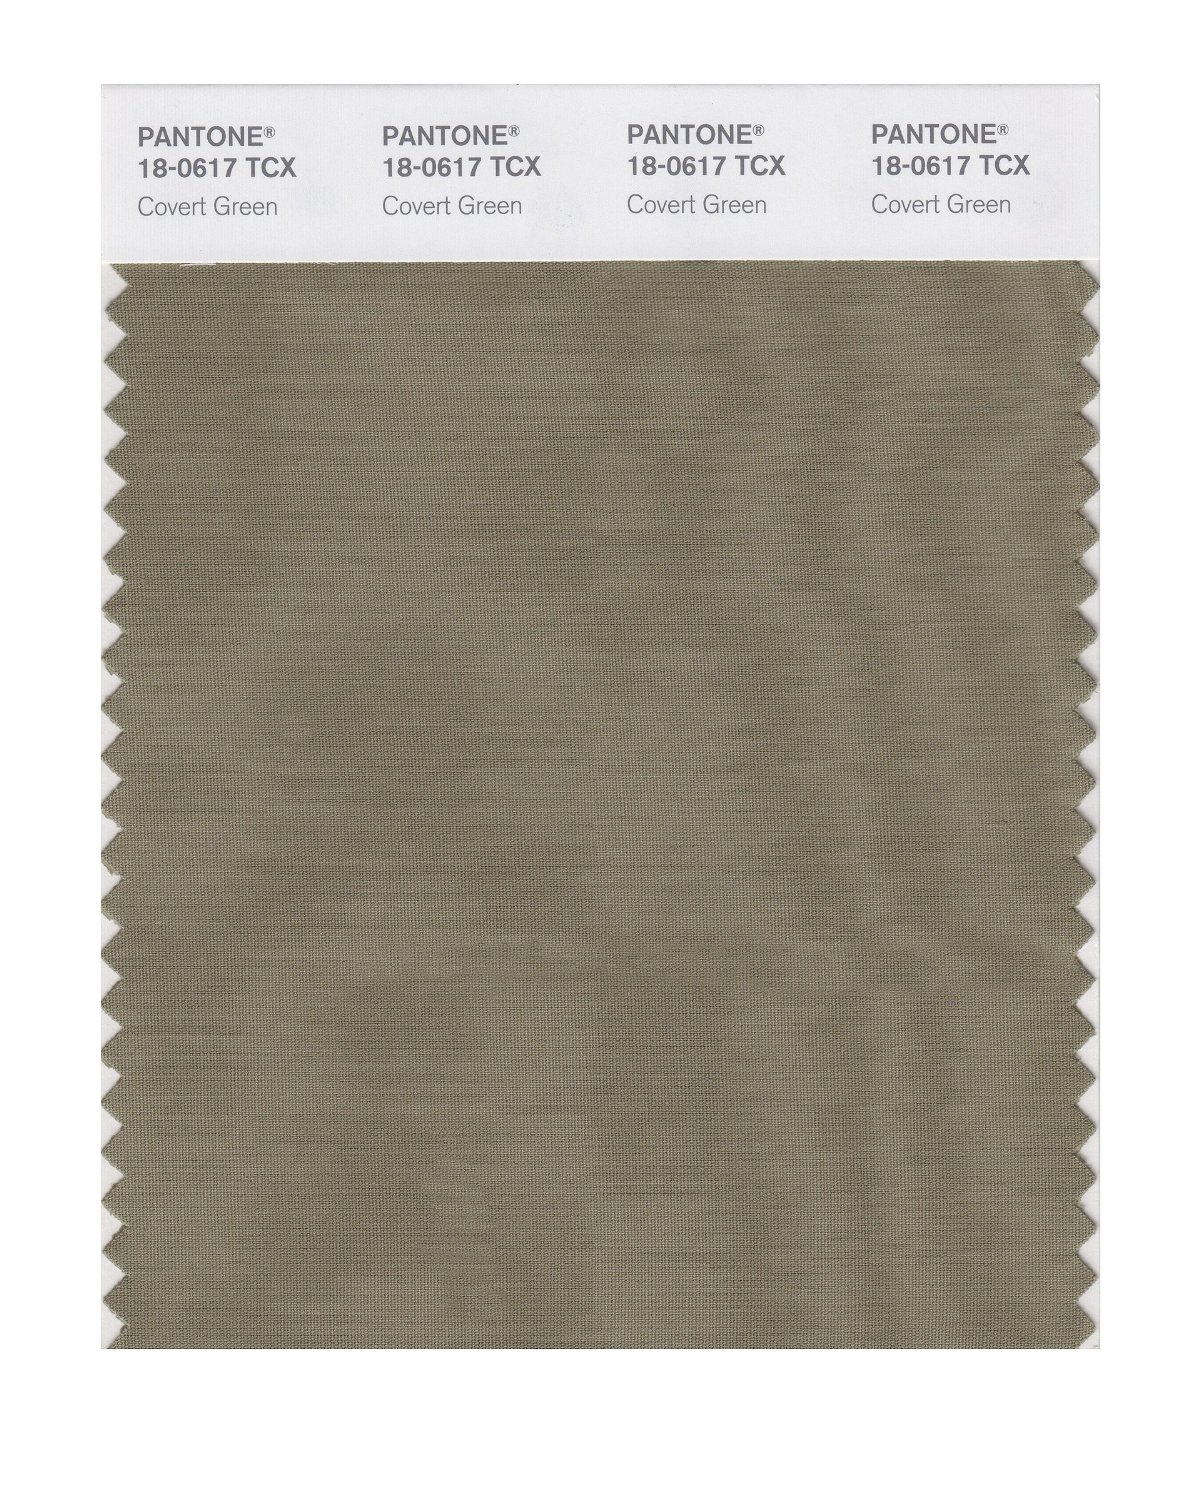 Pantone Smart Swatch 18-0617 Covert Green